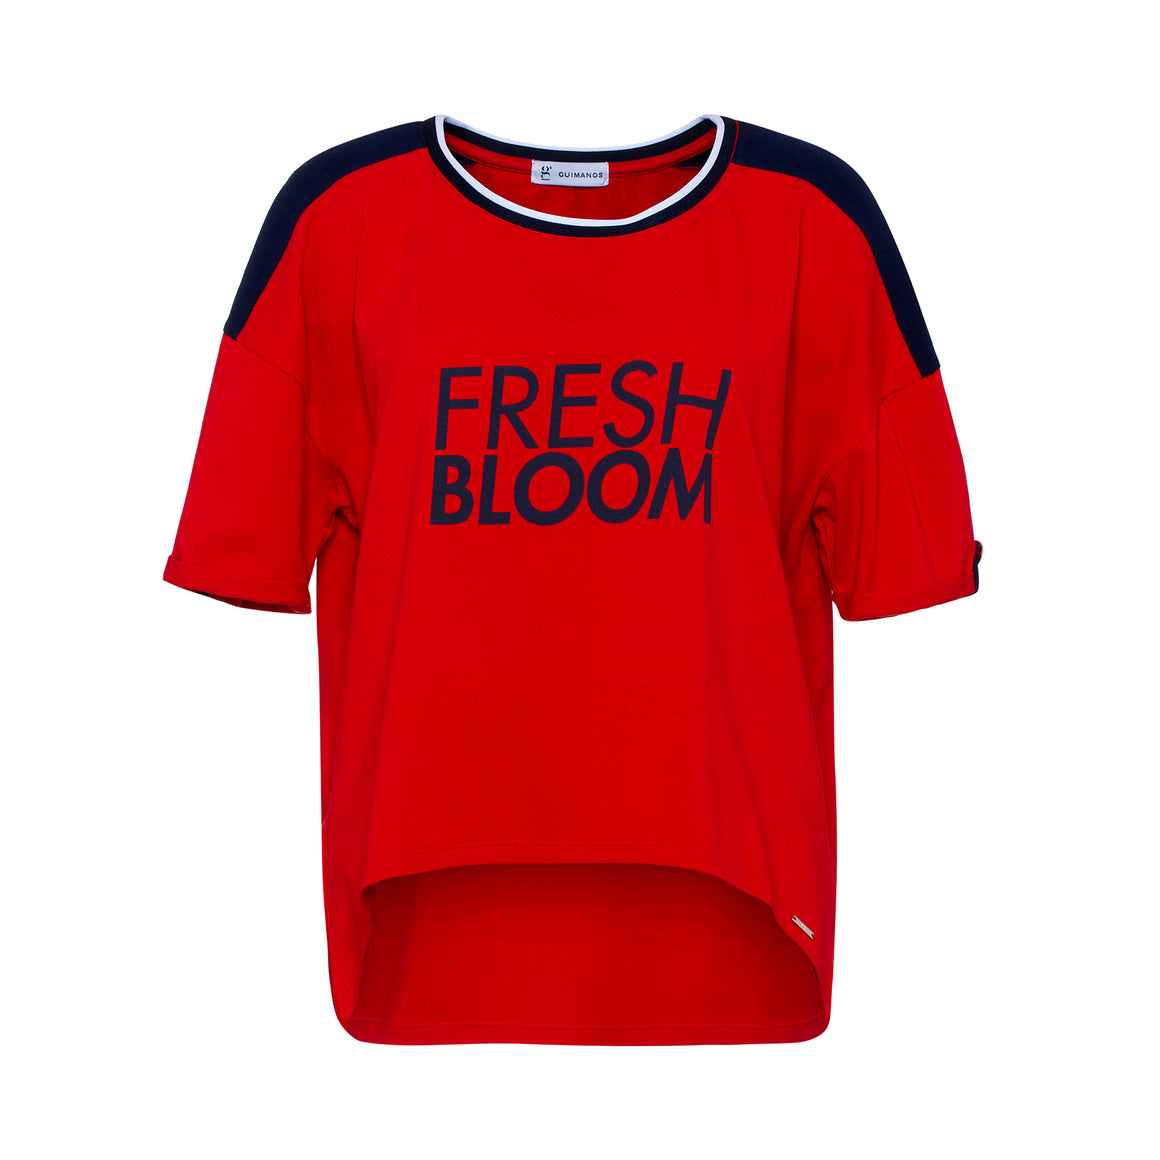 Tshirt Fresh Bloom